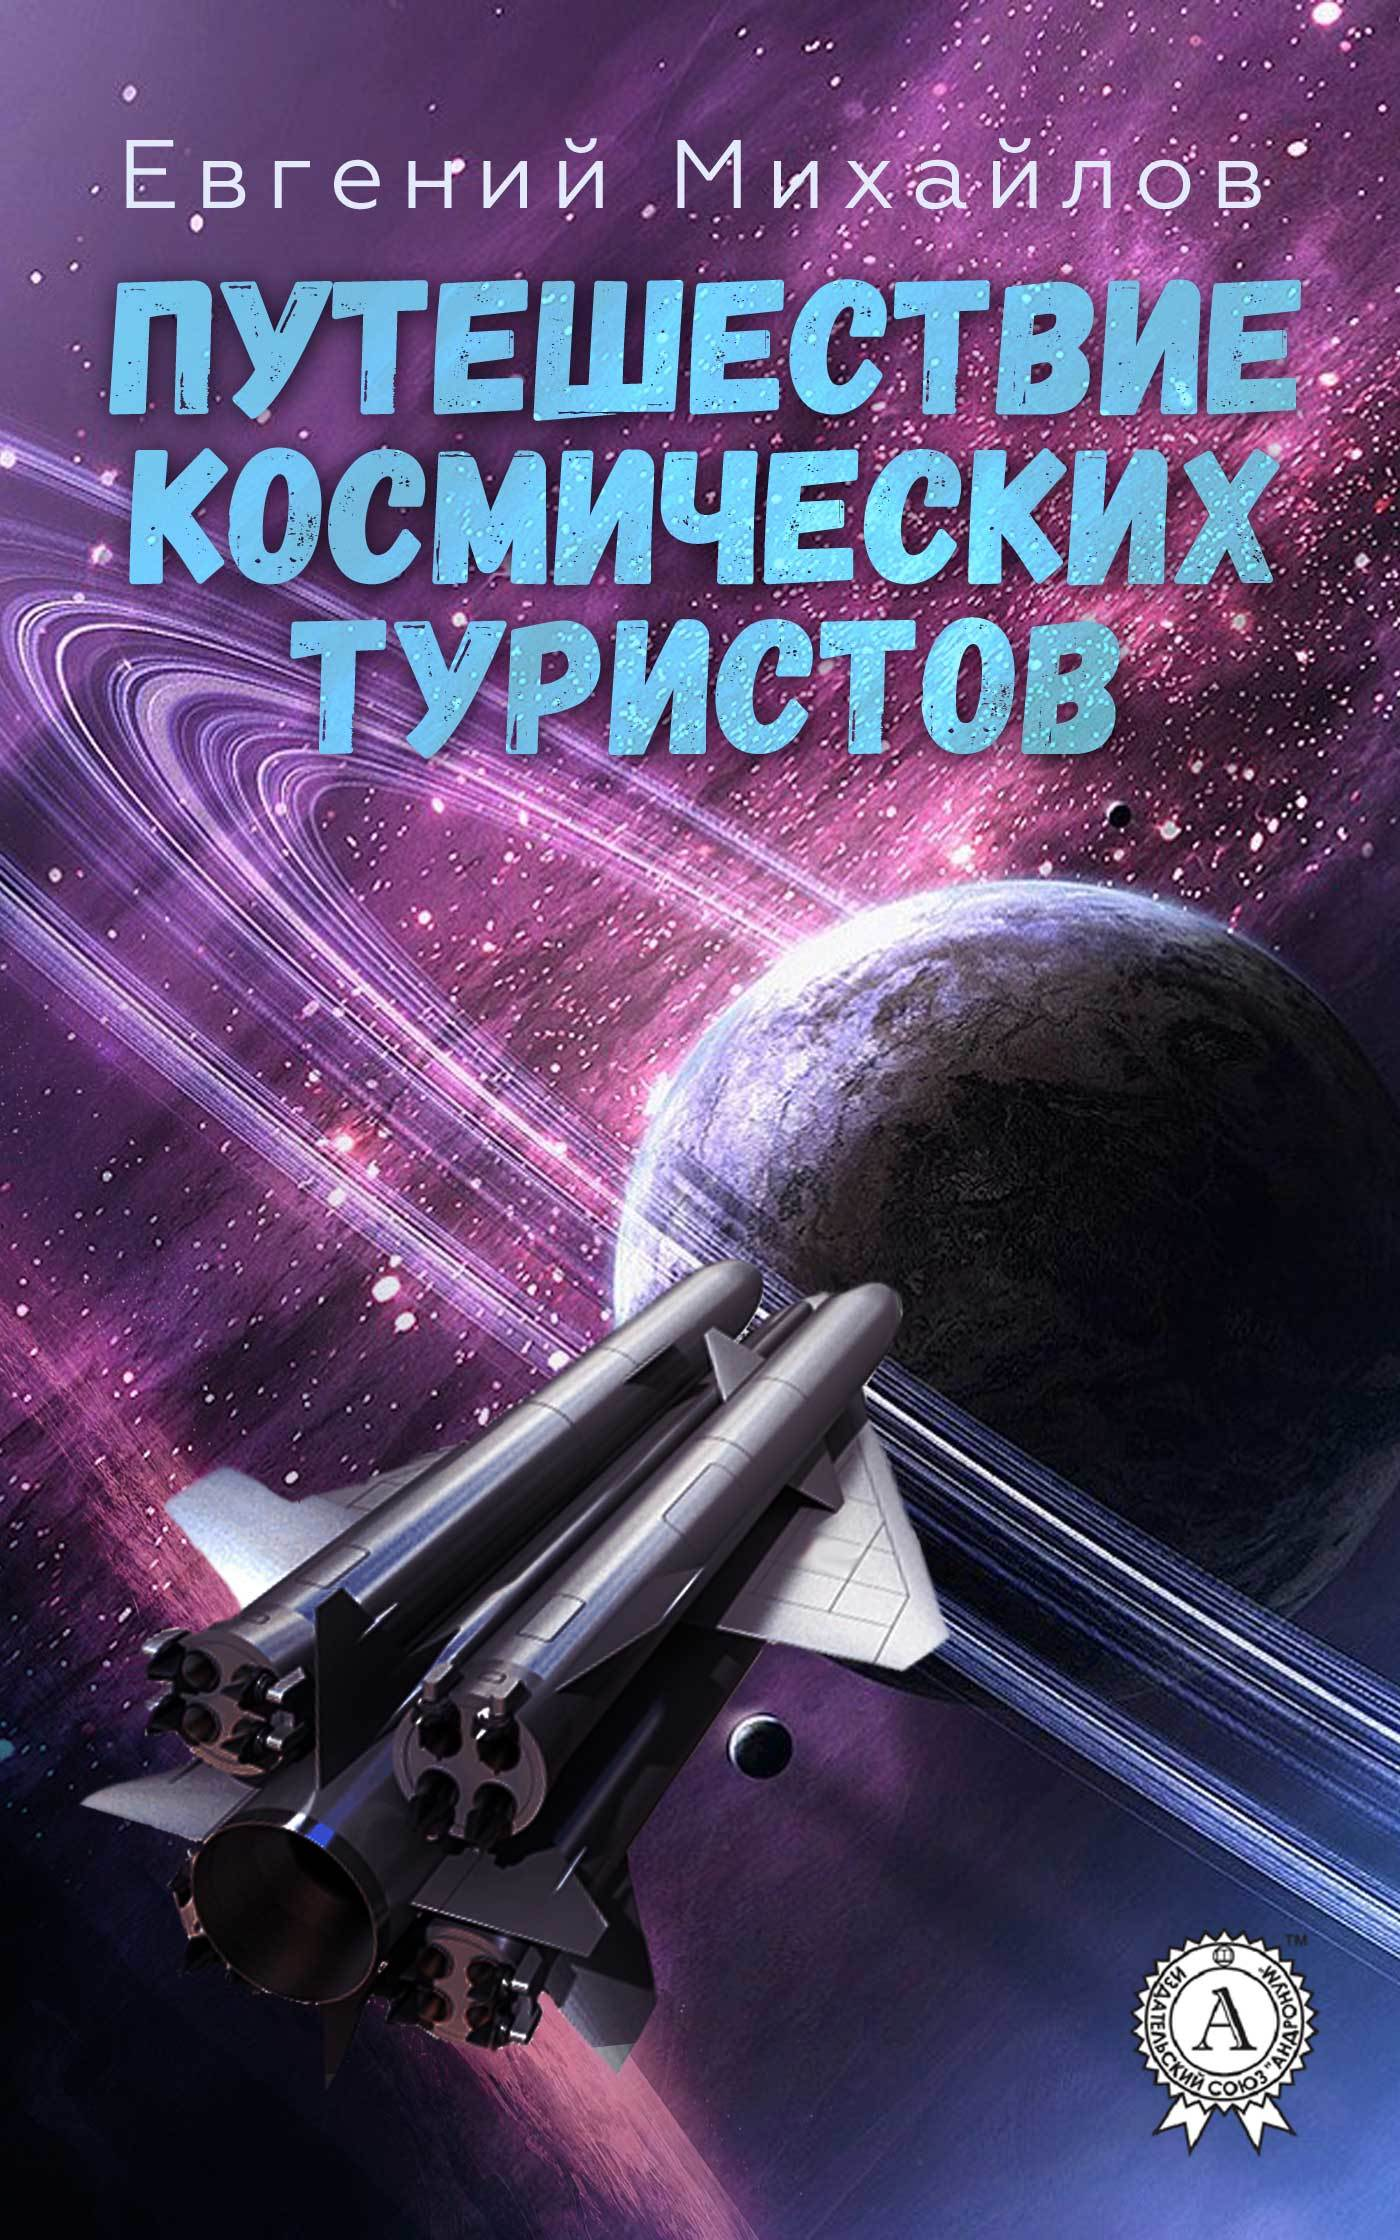 обложка книги static/bookimages/22/70/69/22706981.bin.dir/22706981.cover.jpg